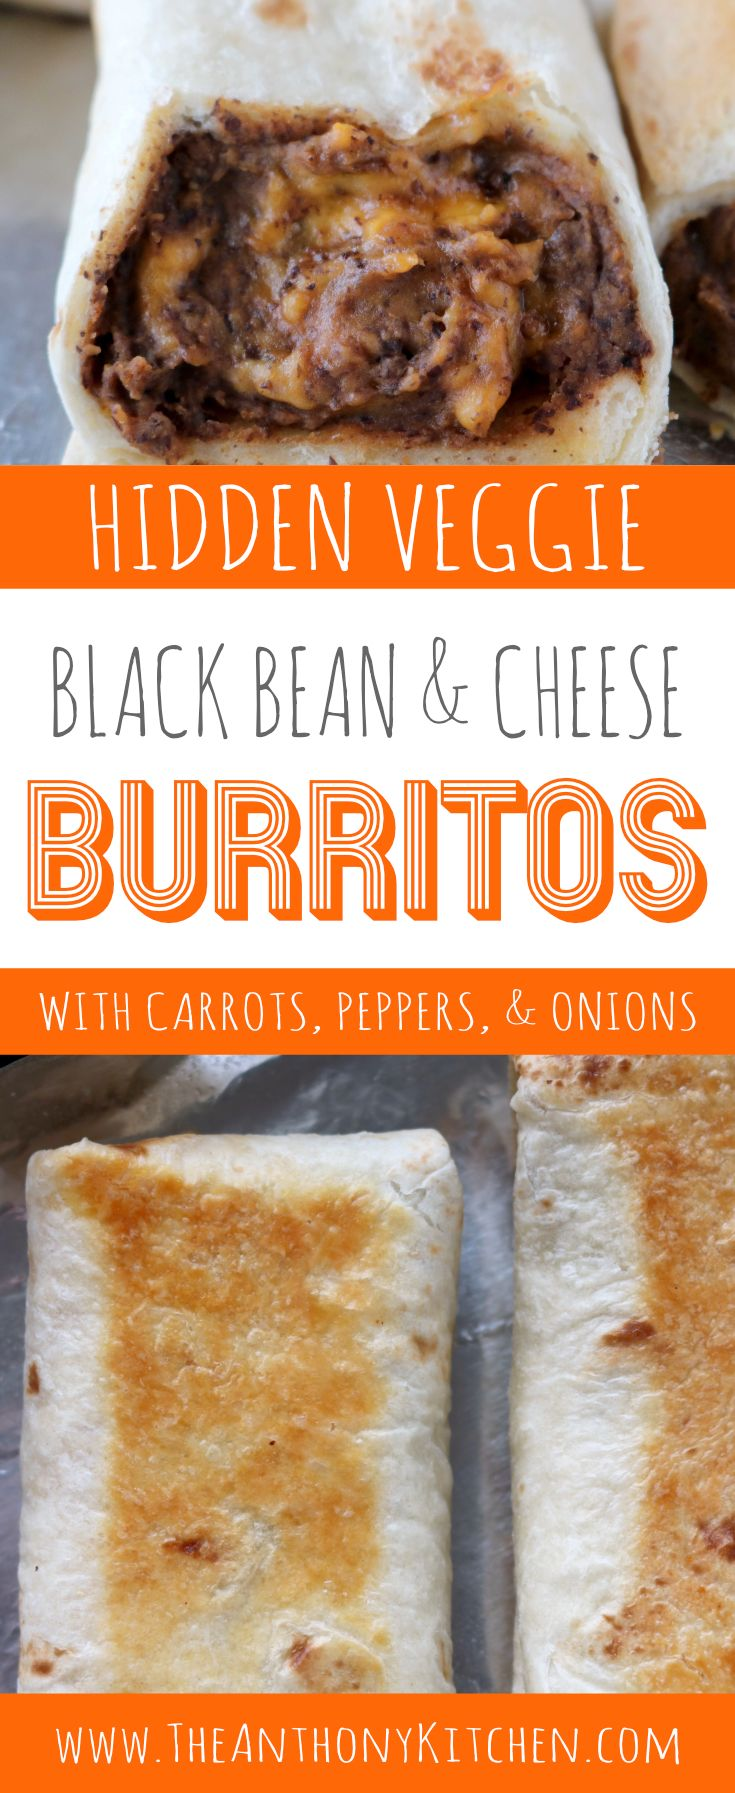 Kid Friendly Recipe | Baked Burrito | Black Bean and Cheese Burrito | A kid-friendly, baked burrito recipe featuring black beans, cheddar cheese, and hidden vegetables! Perfect for freezer-friendly dinners and make-ahead lunches! | #makeaheadmeals #kidfriendlydinner #lunchboxideas #blackbeanrecipes #burritos